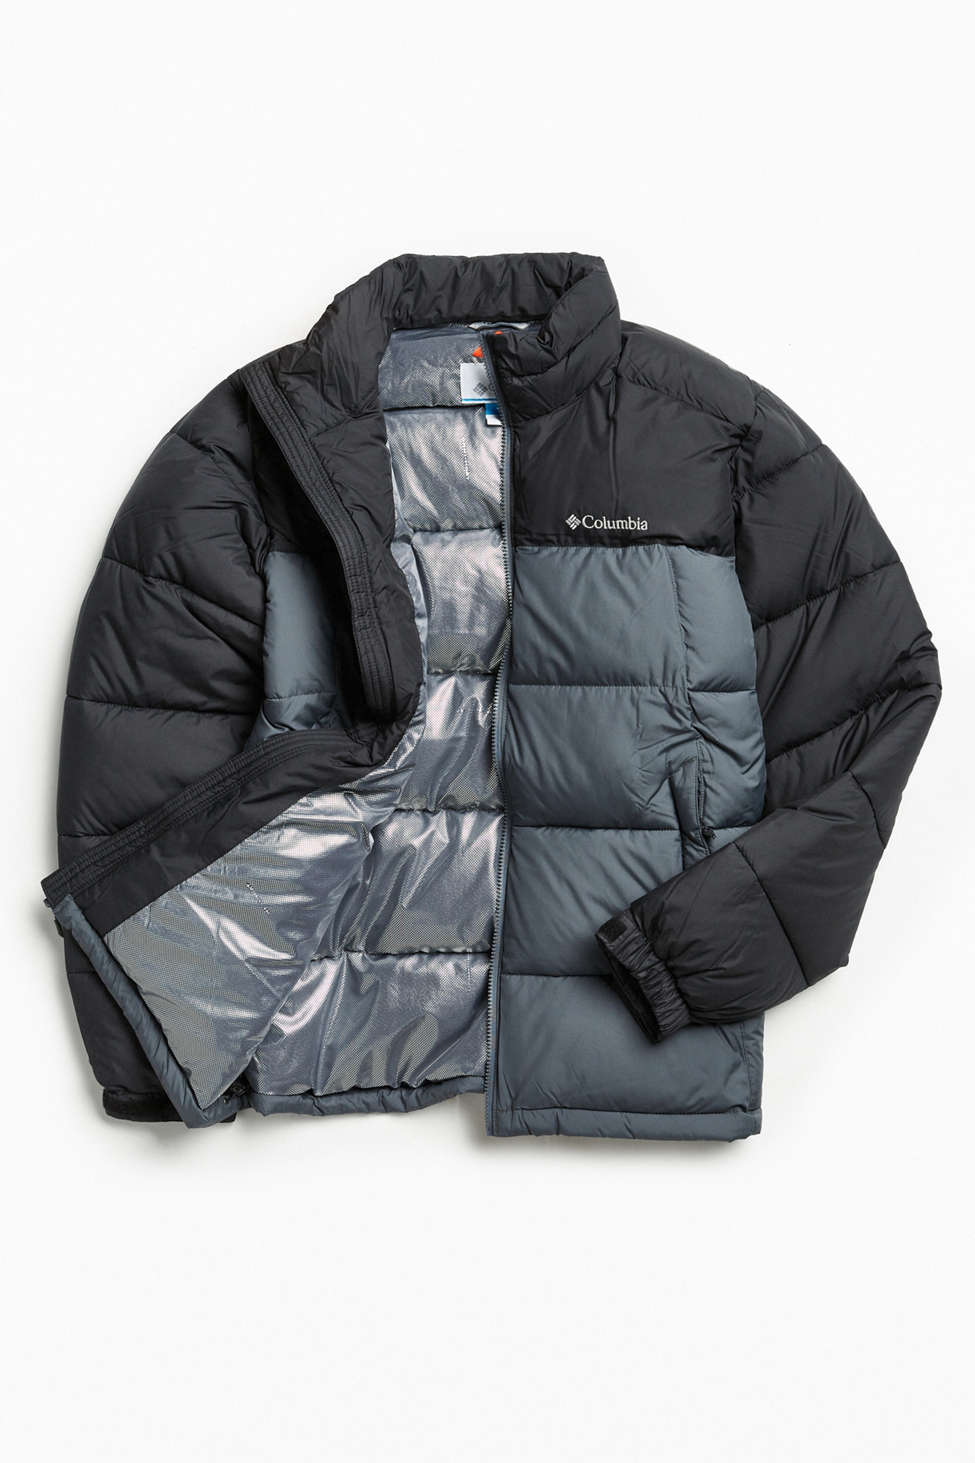 Where To Buy A Columbia Jacket - Best Jacket 2017